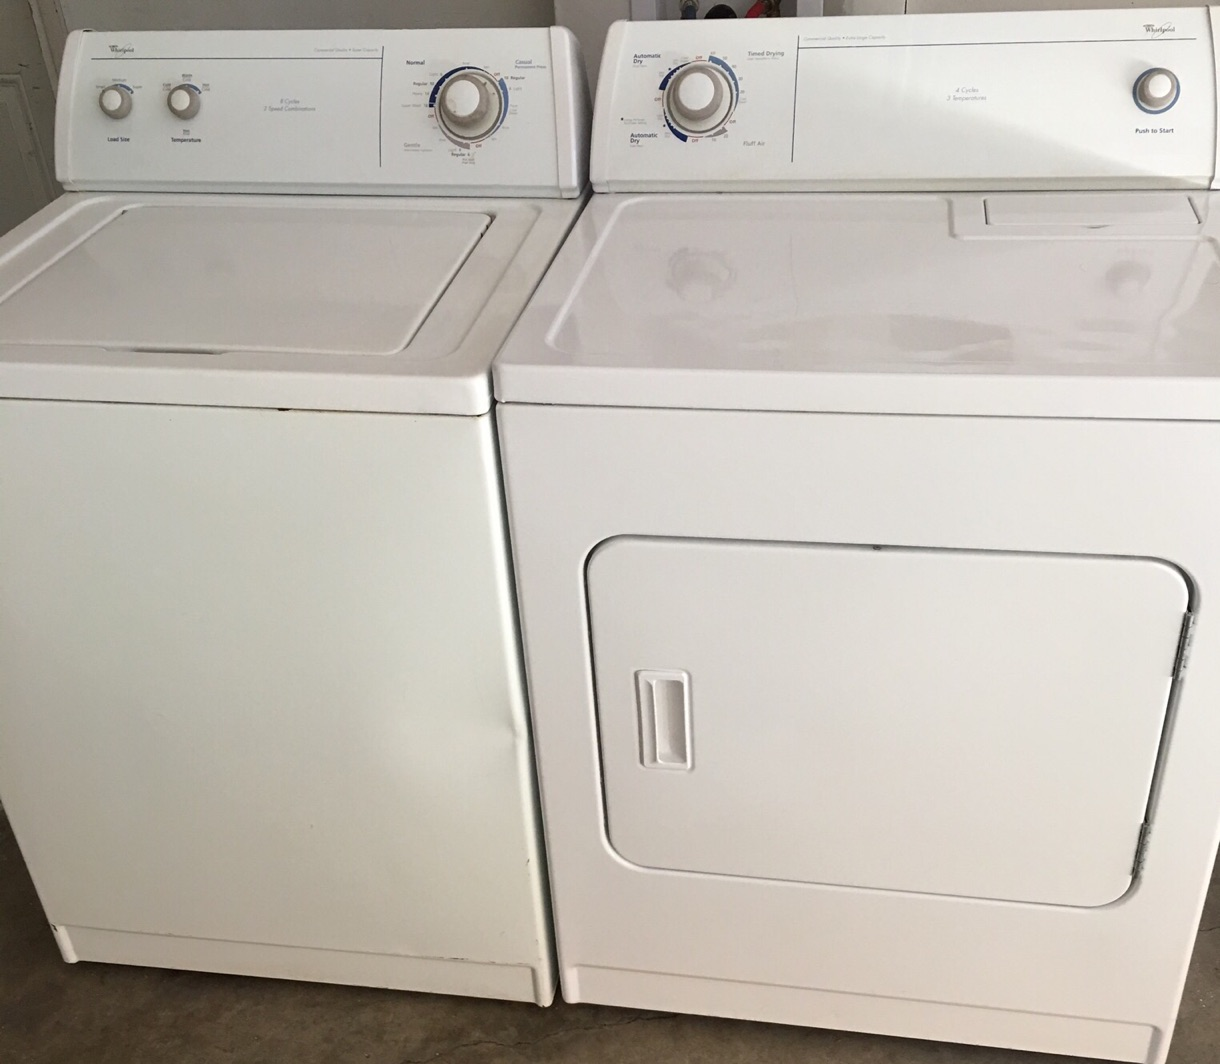 Whirlpool Washer And Dryer Set For Sale In The Colony, TX